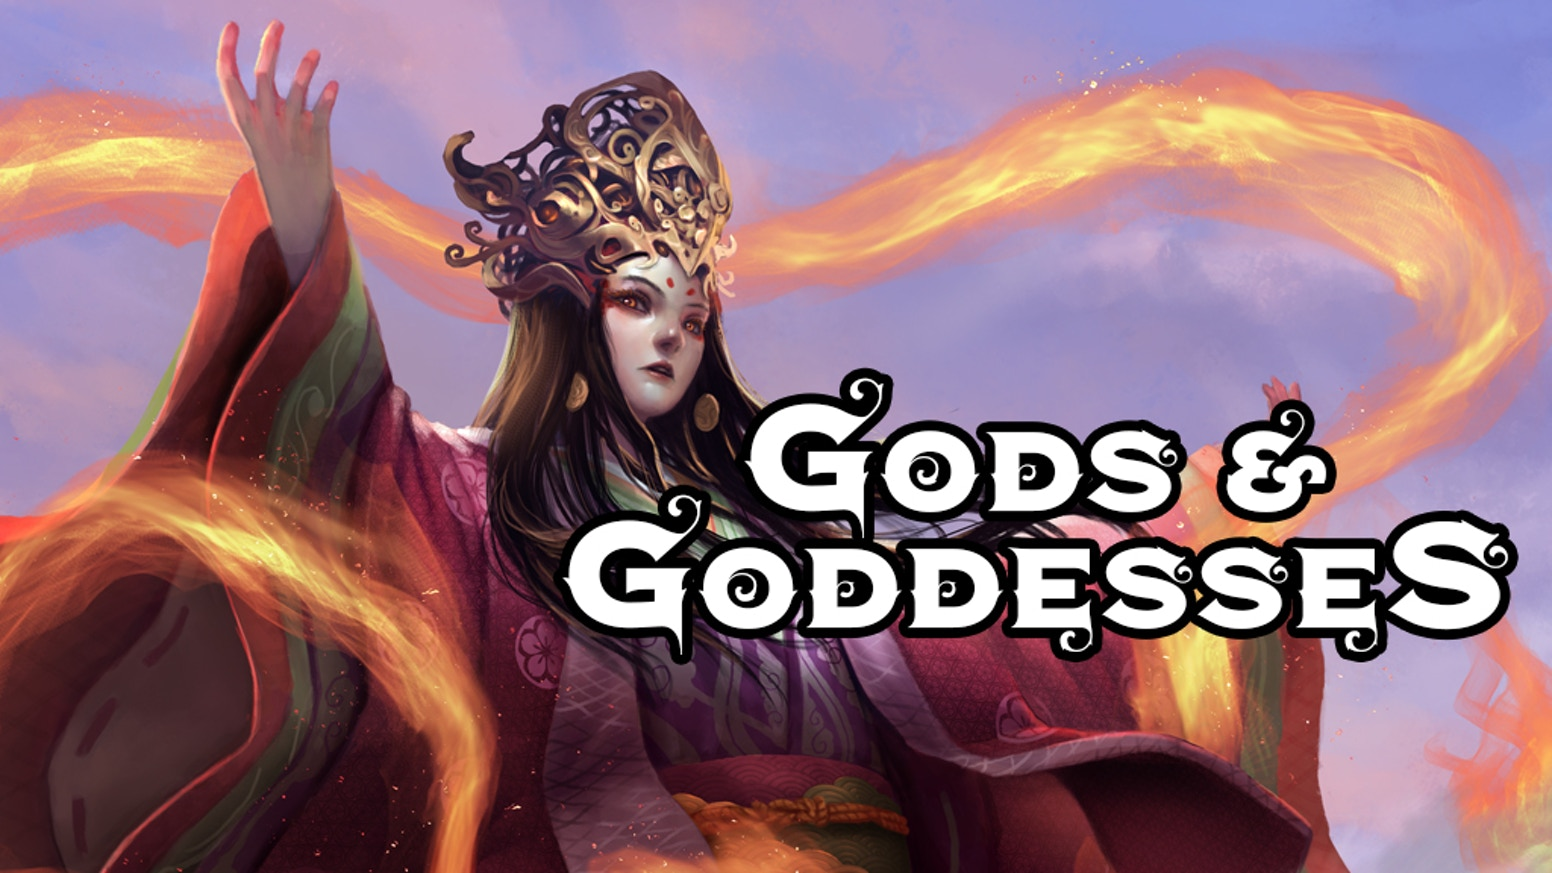 From the award winning art studio for official 5e books, comes Gods and Goddesses: a 5th Edition Supplement.  This campaign has ended, but you can still order the book at the link below.